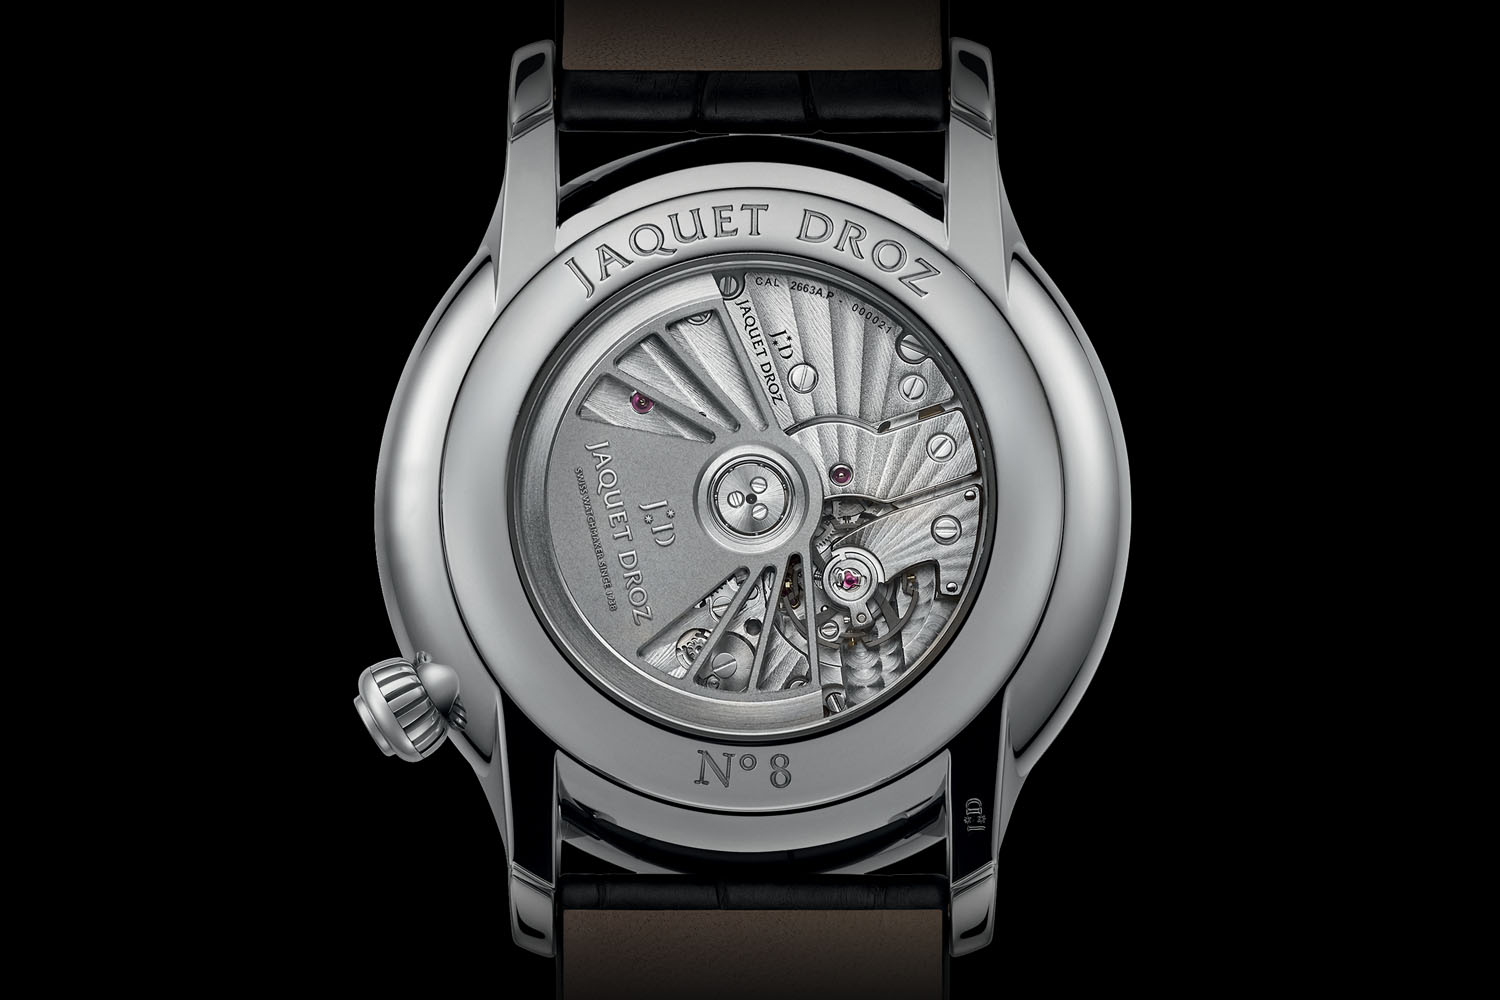 Jaquet Droz Grande Seconde Off-Centered Onyx Dial - Calibre 2663A